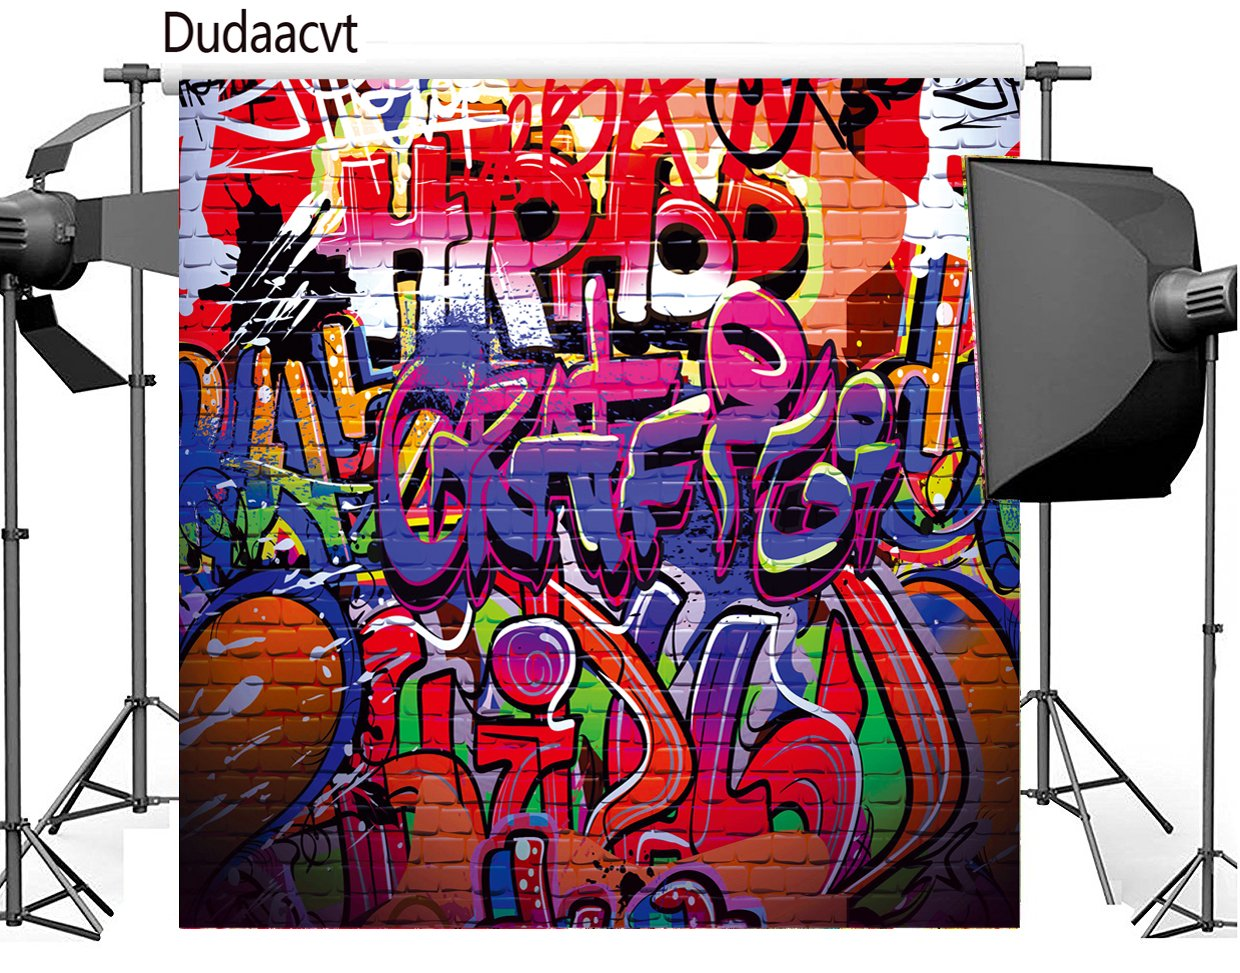 Dudaacvt 8x8 ft Photography Backdrop Hip Hop Graffiti Style Backdrop Vintage Colorful Background Q0140808 by Dudaacvt